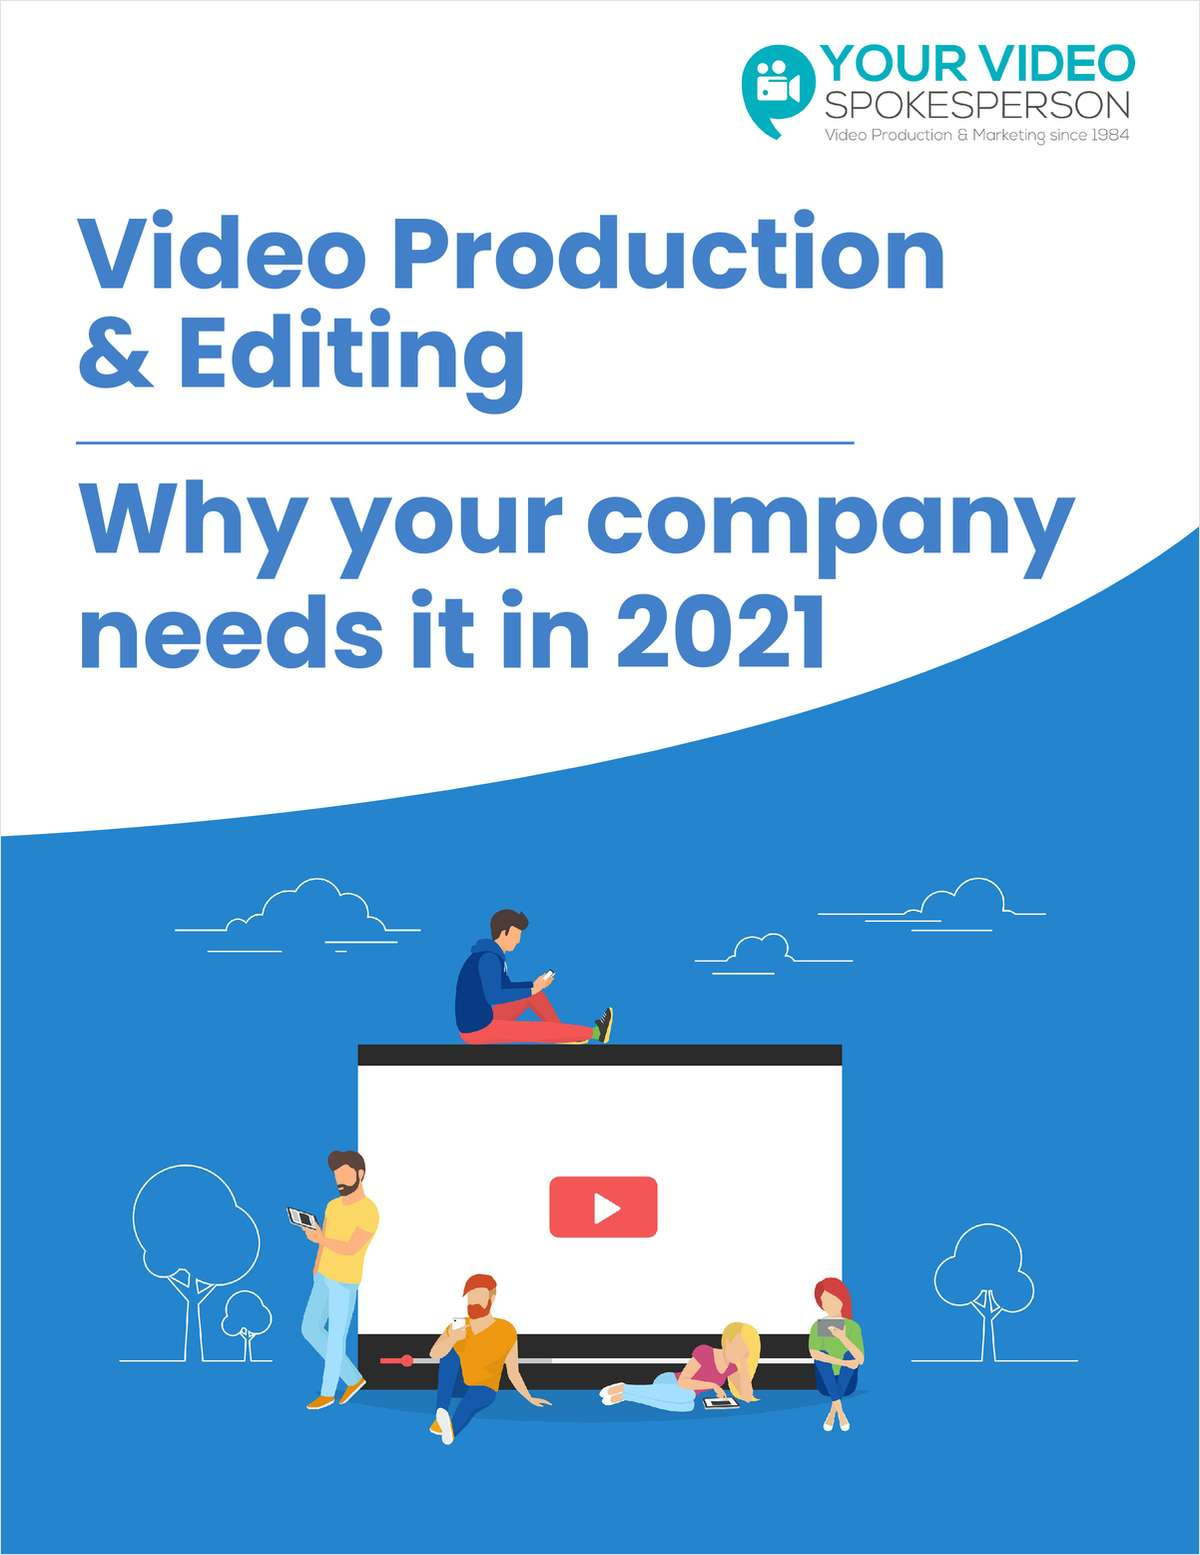 Video Production & Editing - Why your company needs it in 2021